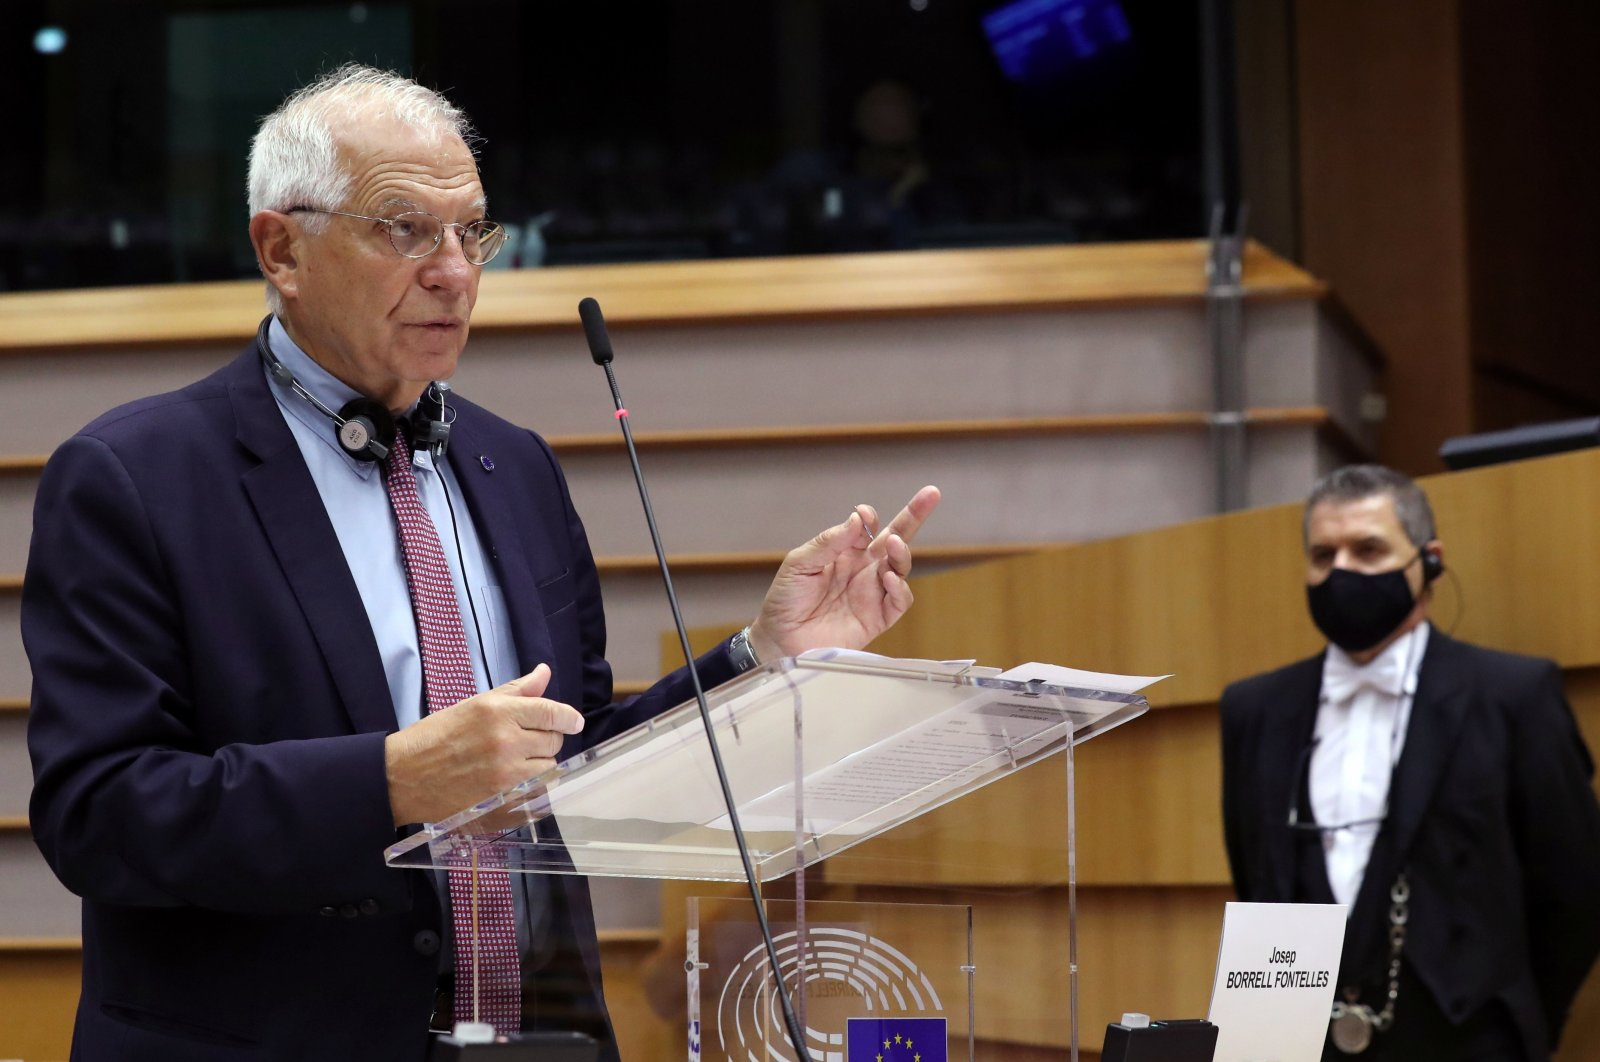 European Union foreign policy chief Josep Borrell attends a plenary session of the European Parliament in Brussels, Belgium, Oct. 7, 2020. (Reuters Photo)